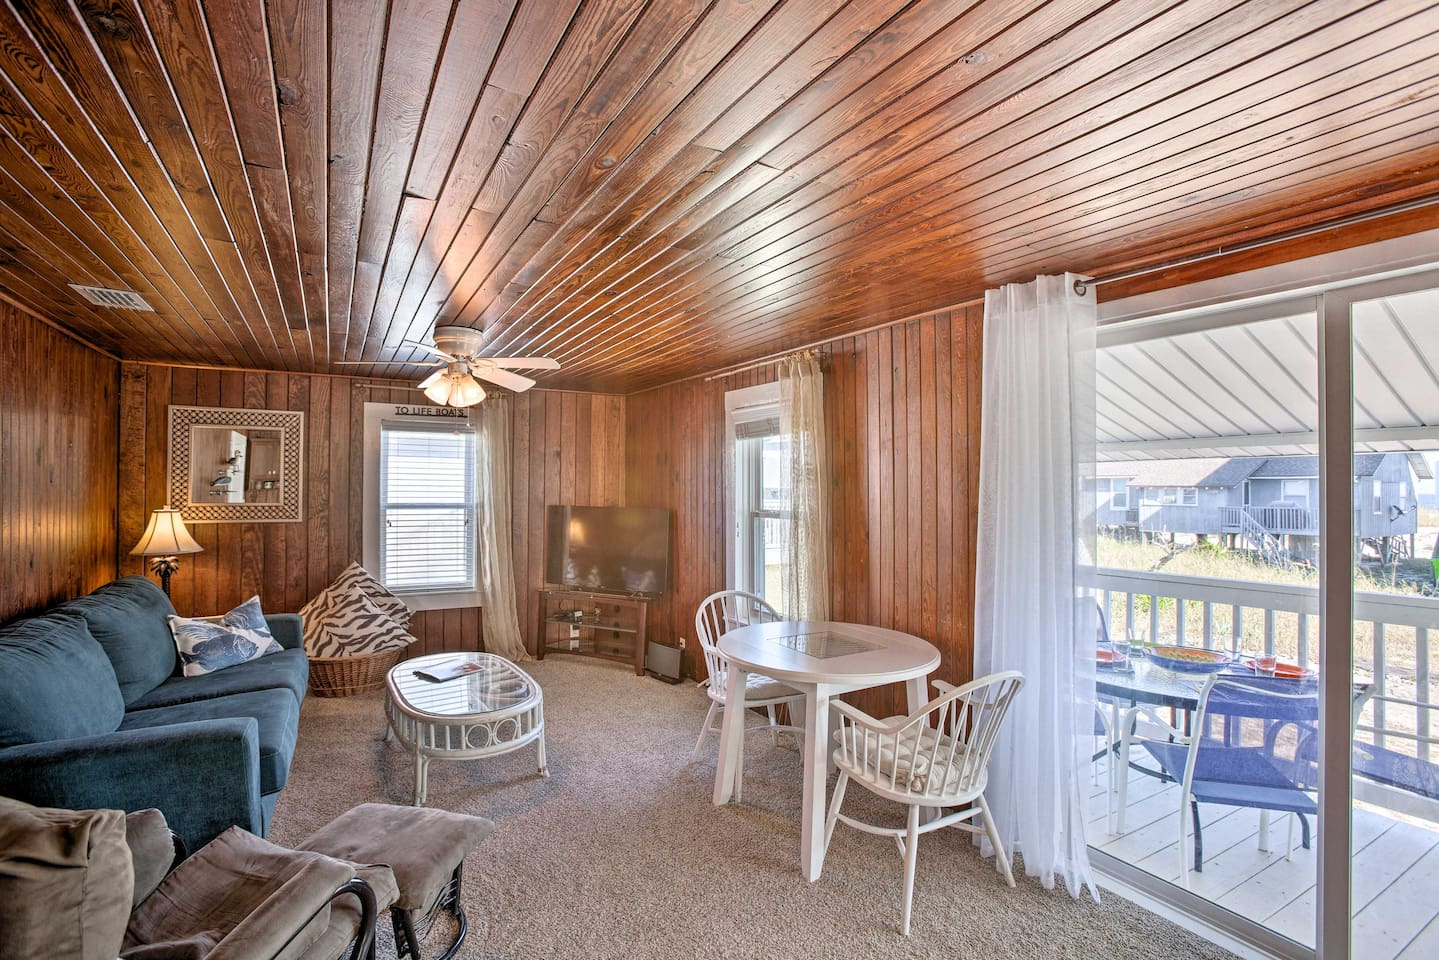 Make this cozy, old school duplex your home-away-from-home by the beach.